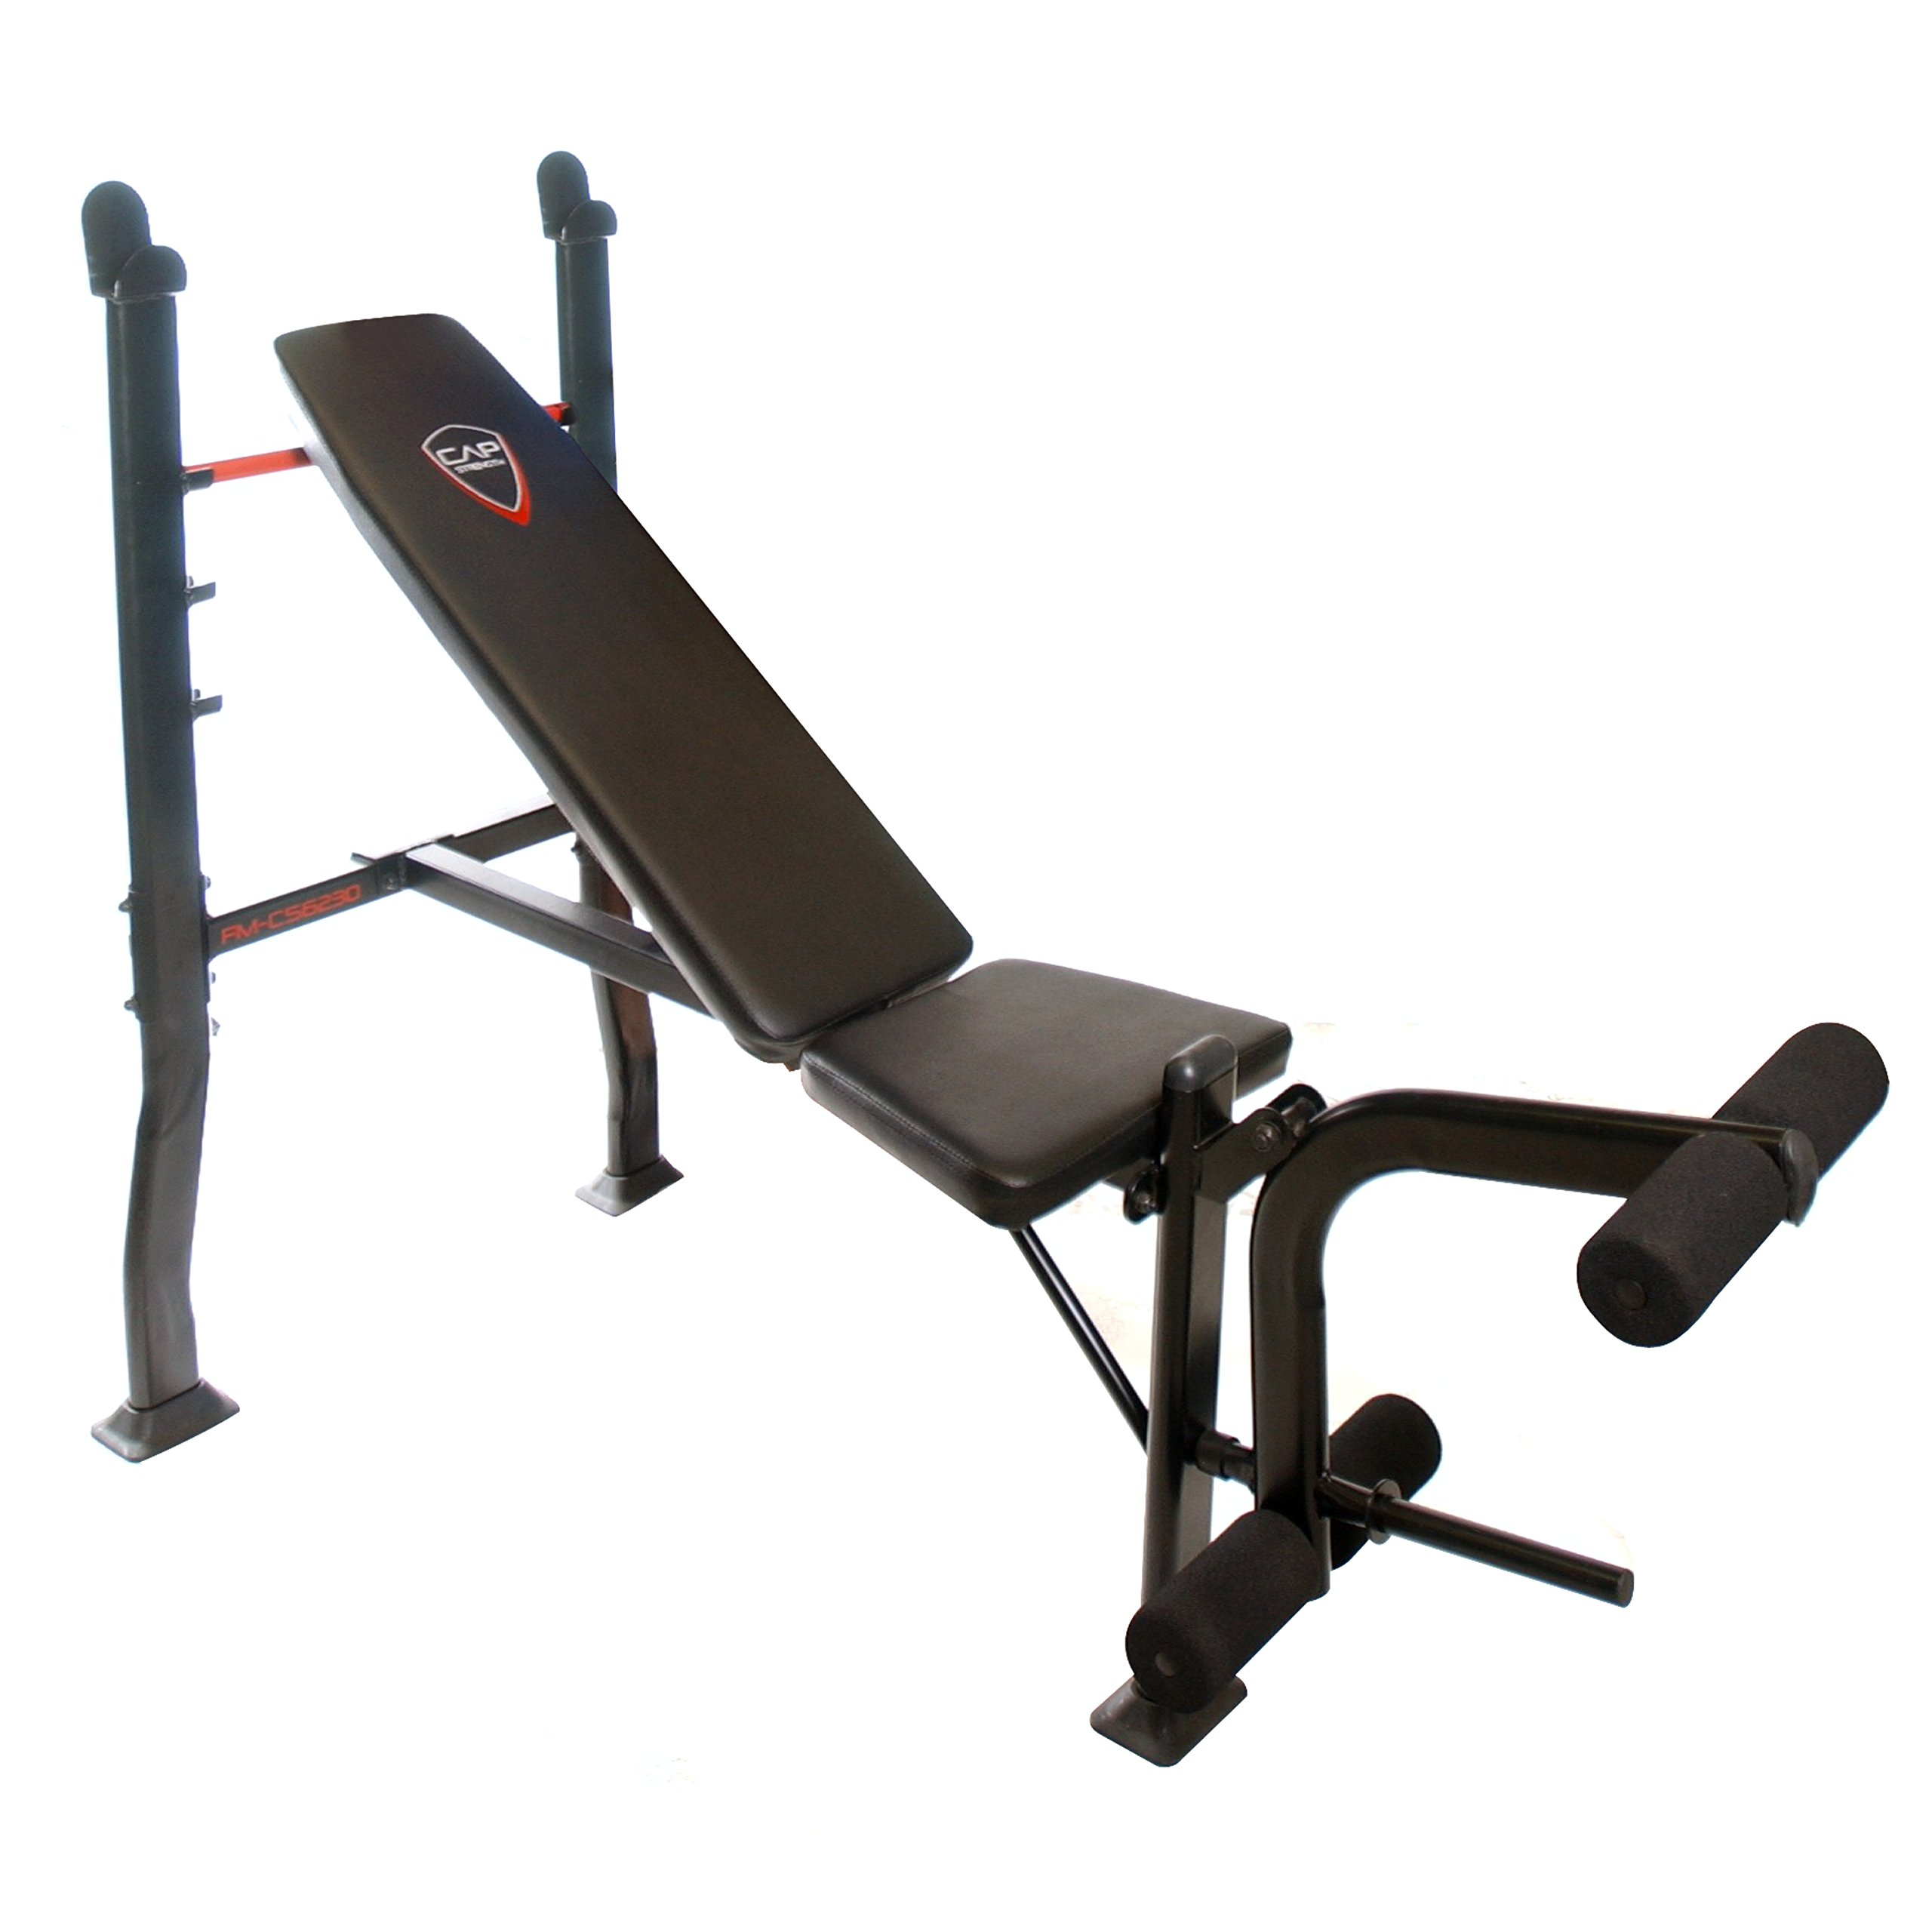 Deluxe Weight Bench Press Equipment Including a 100lbs Weight Set Bar Perfect for Home Gym Workouts Also Features Leg Preacher Curl Station and the Bench Is Adjustable for Incline Workouts and Regular Bench Press